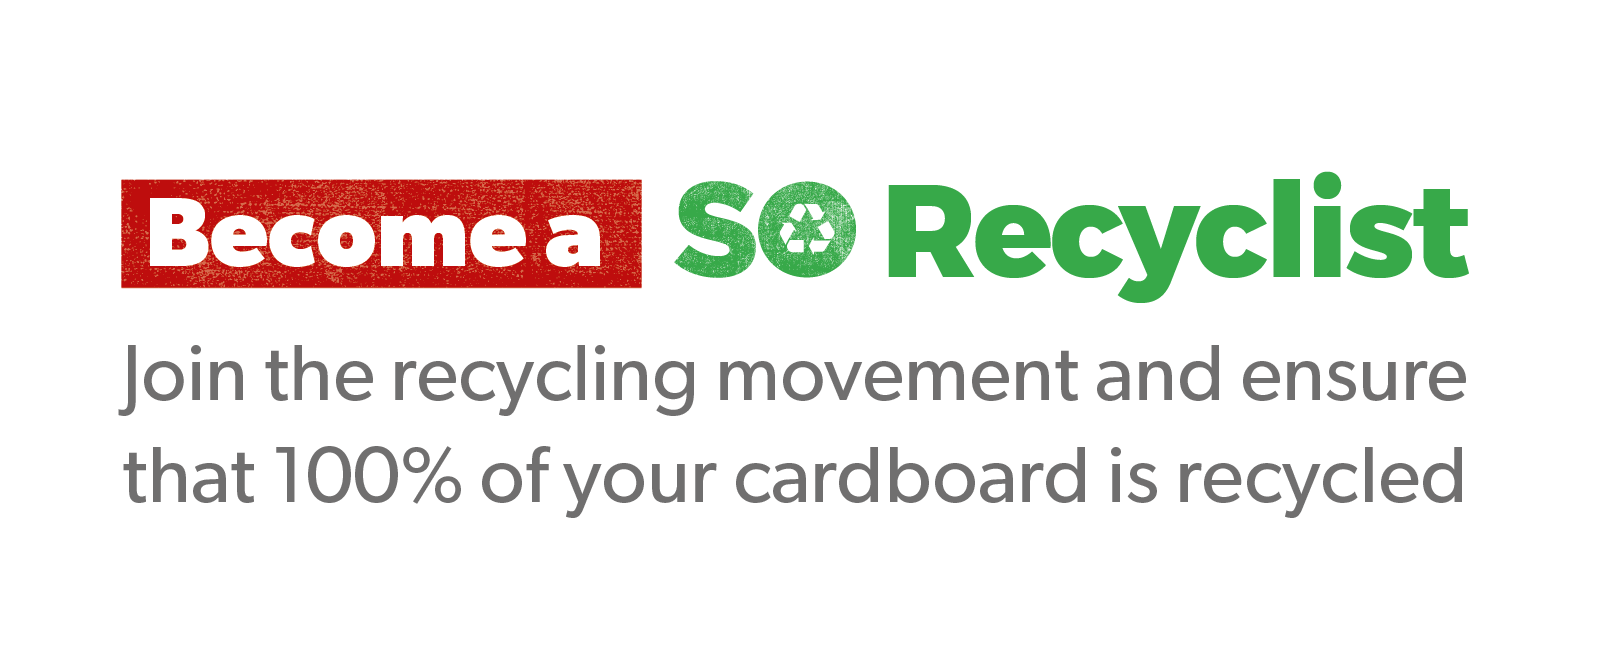 SO Recyclists